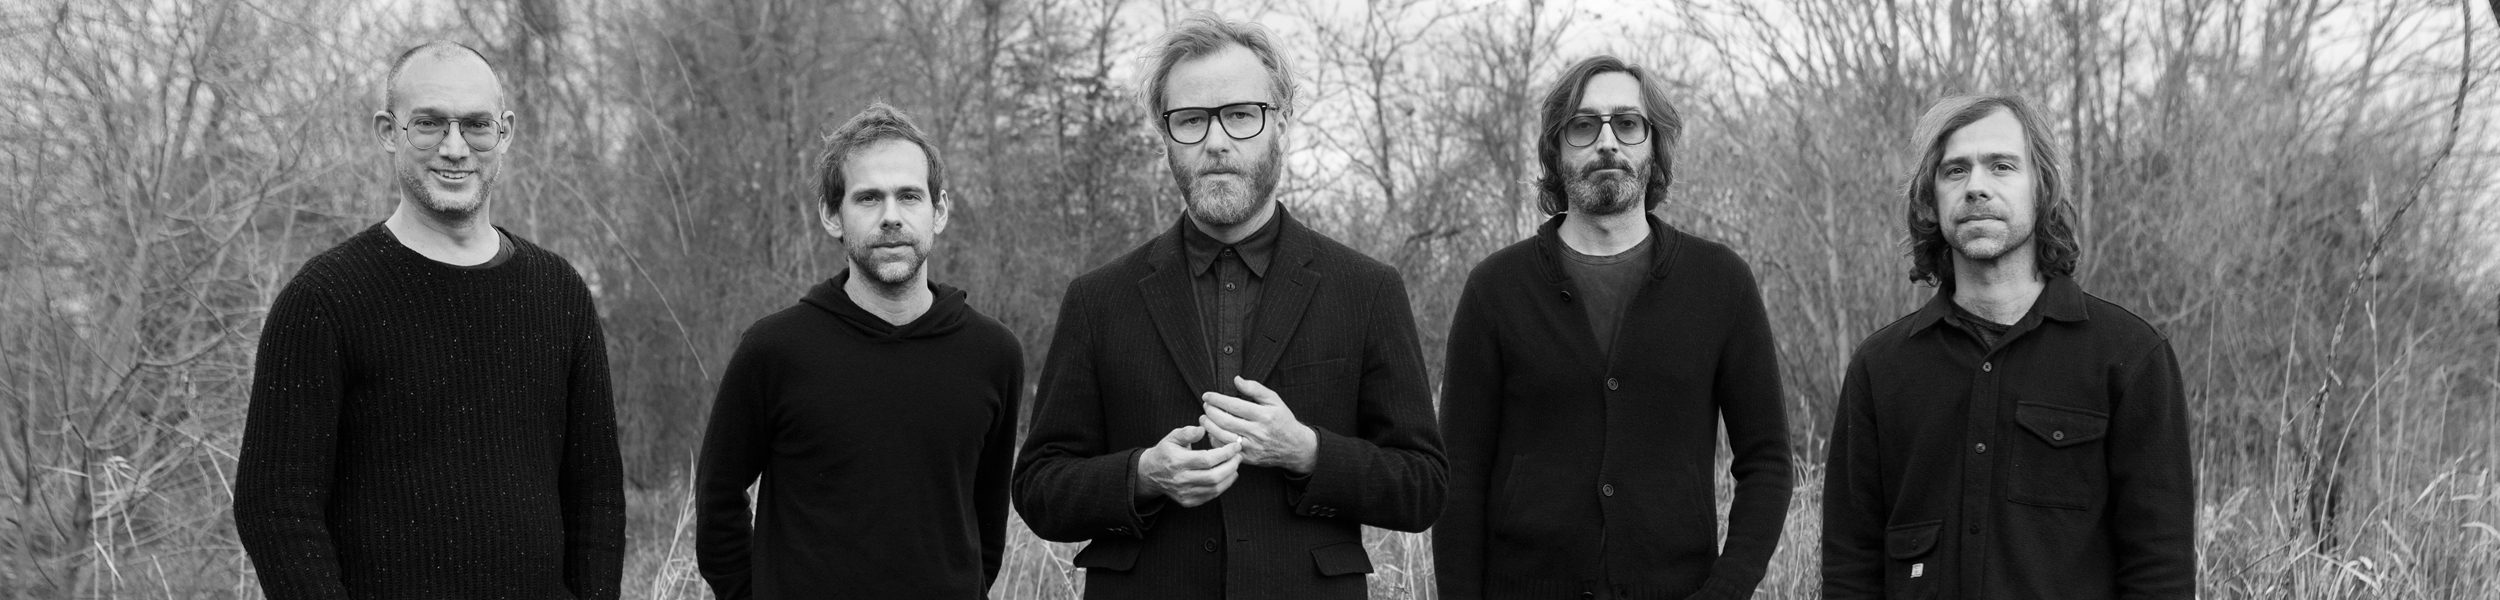 The National - Download Free MP3 of the New The National Single, 'Bloodbuzz Ohio'